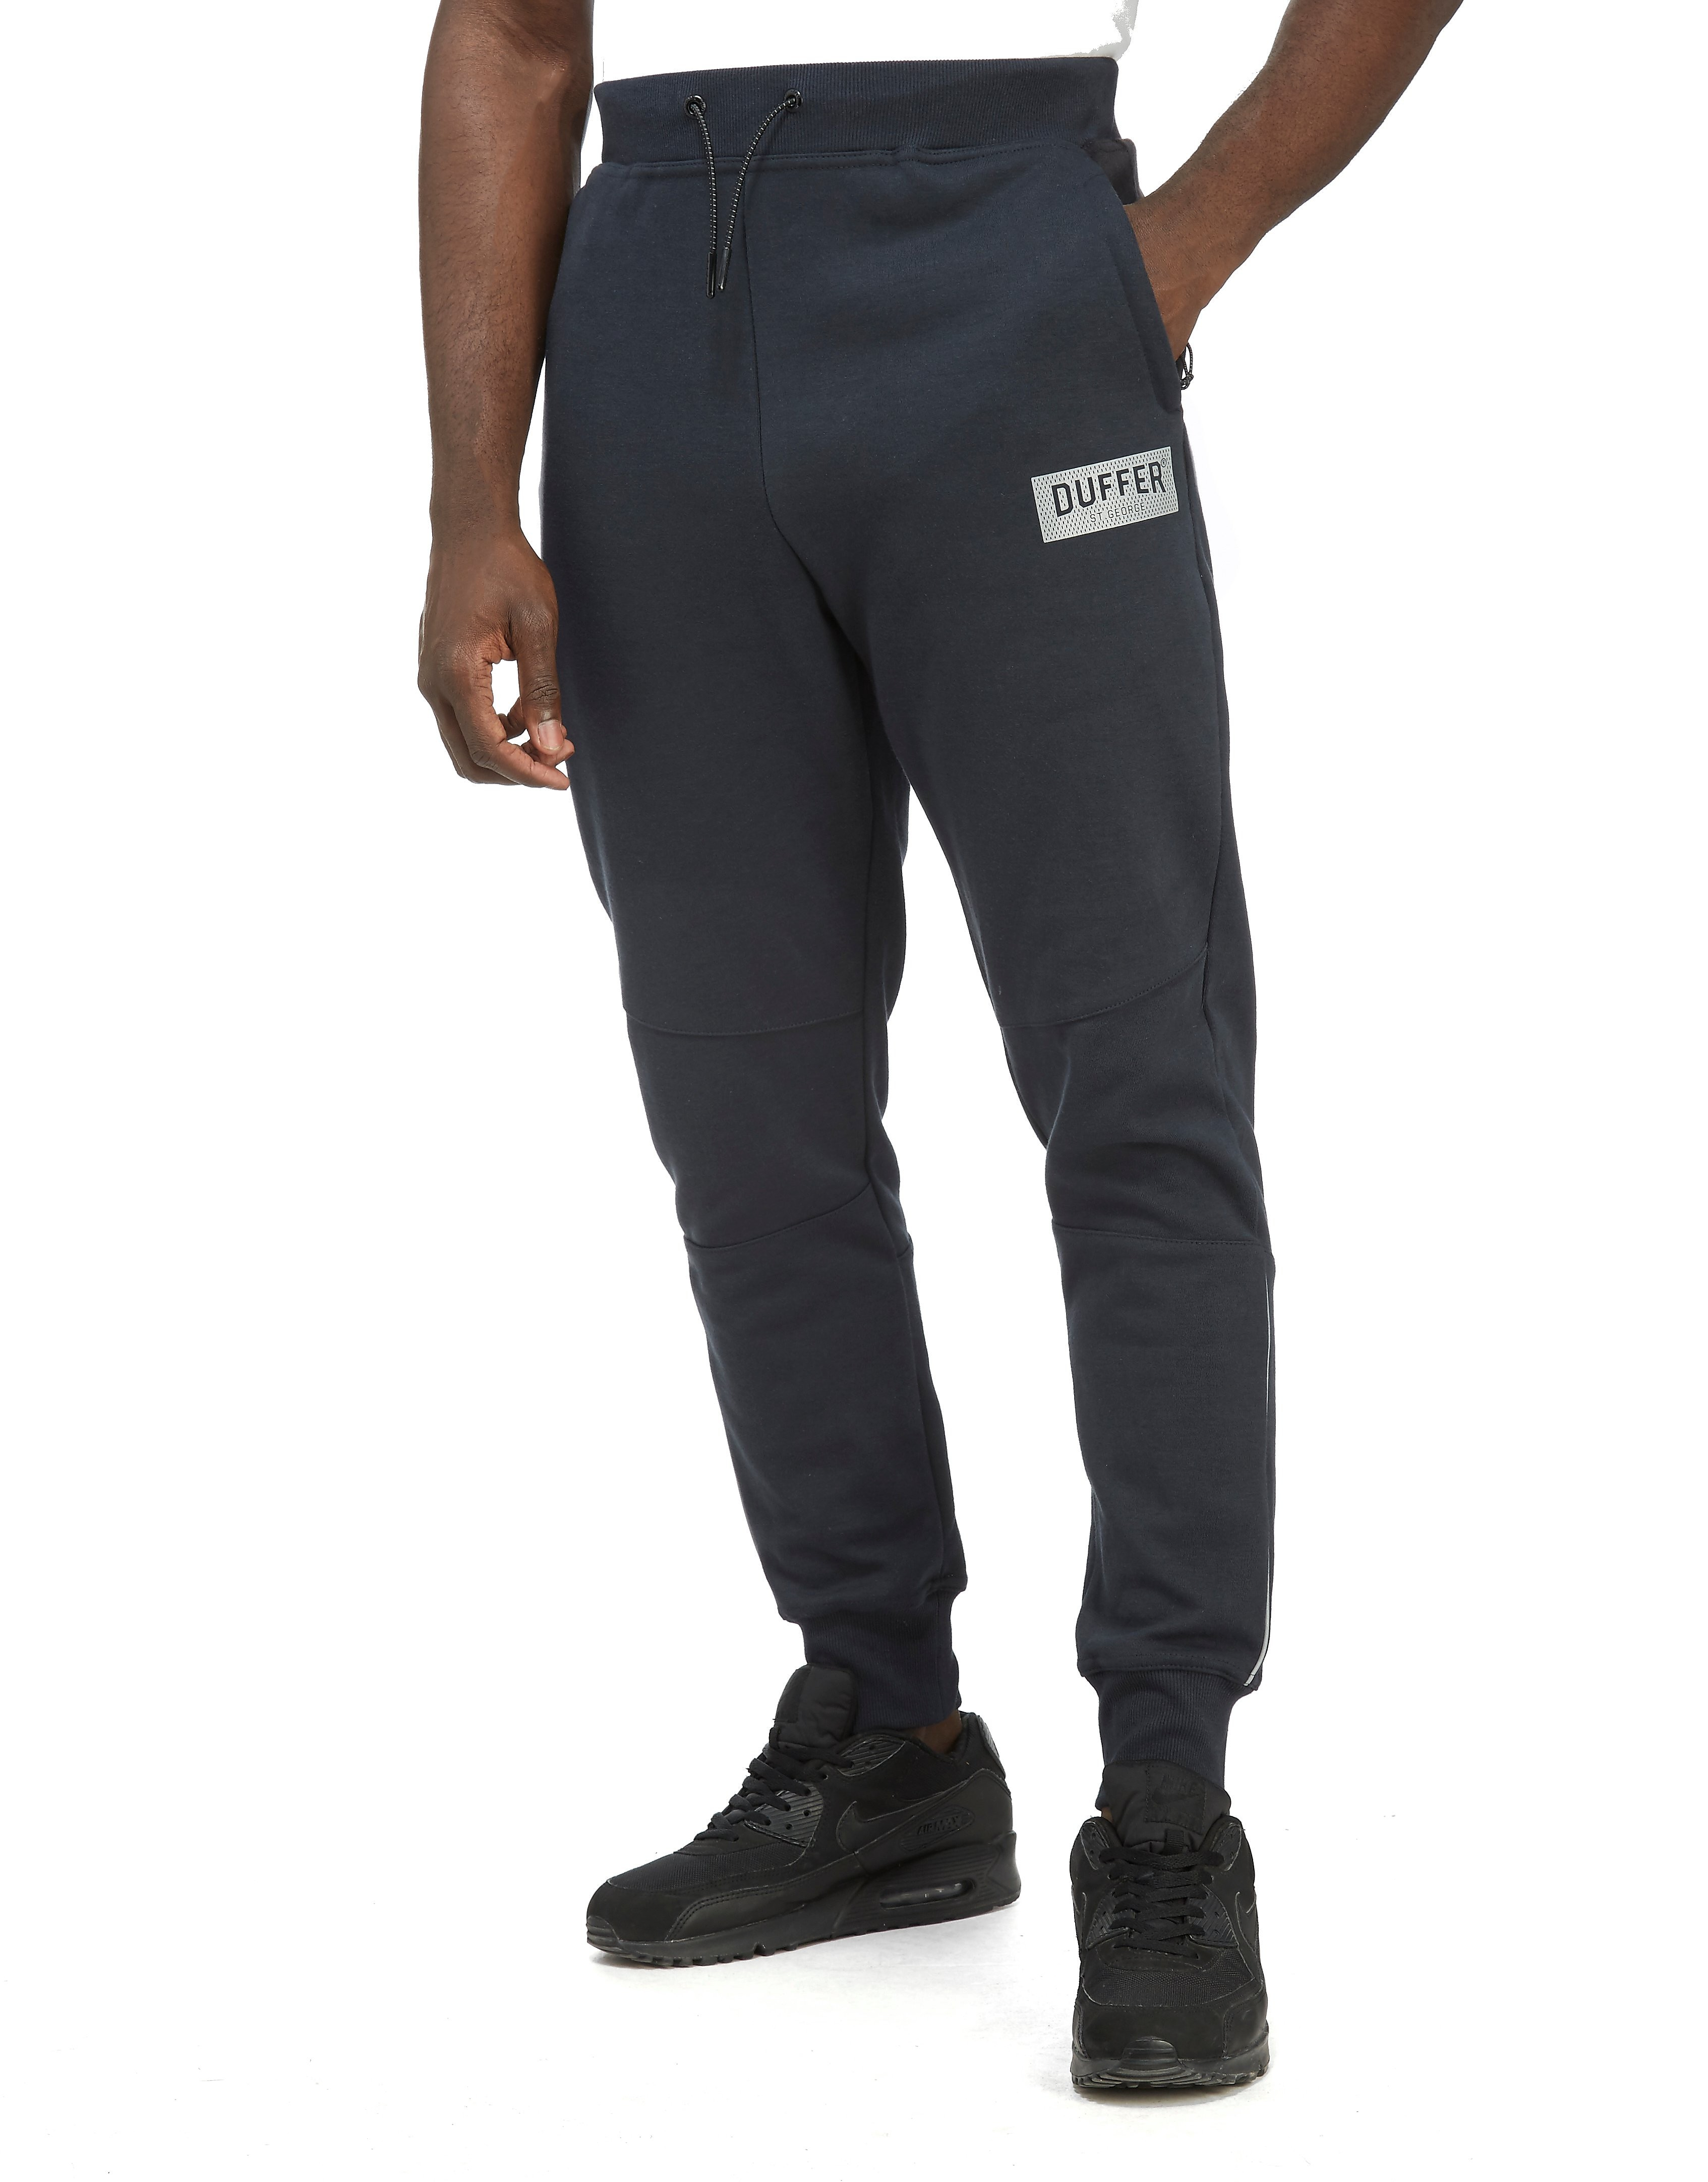 Duffer of St George Essence Jogging Pants